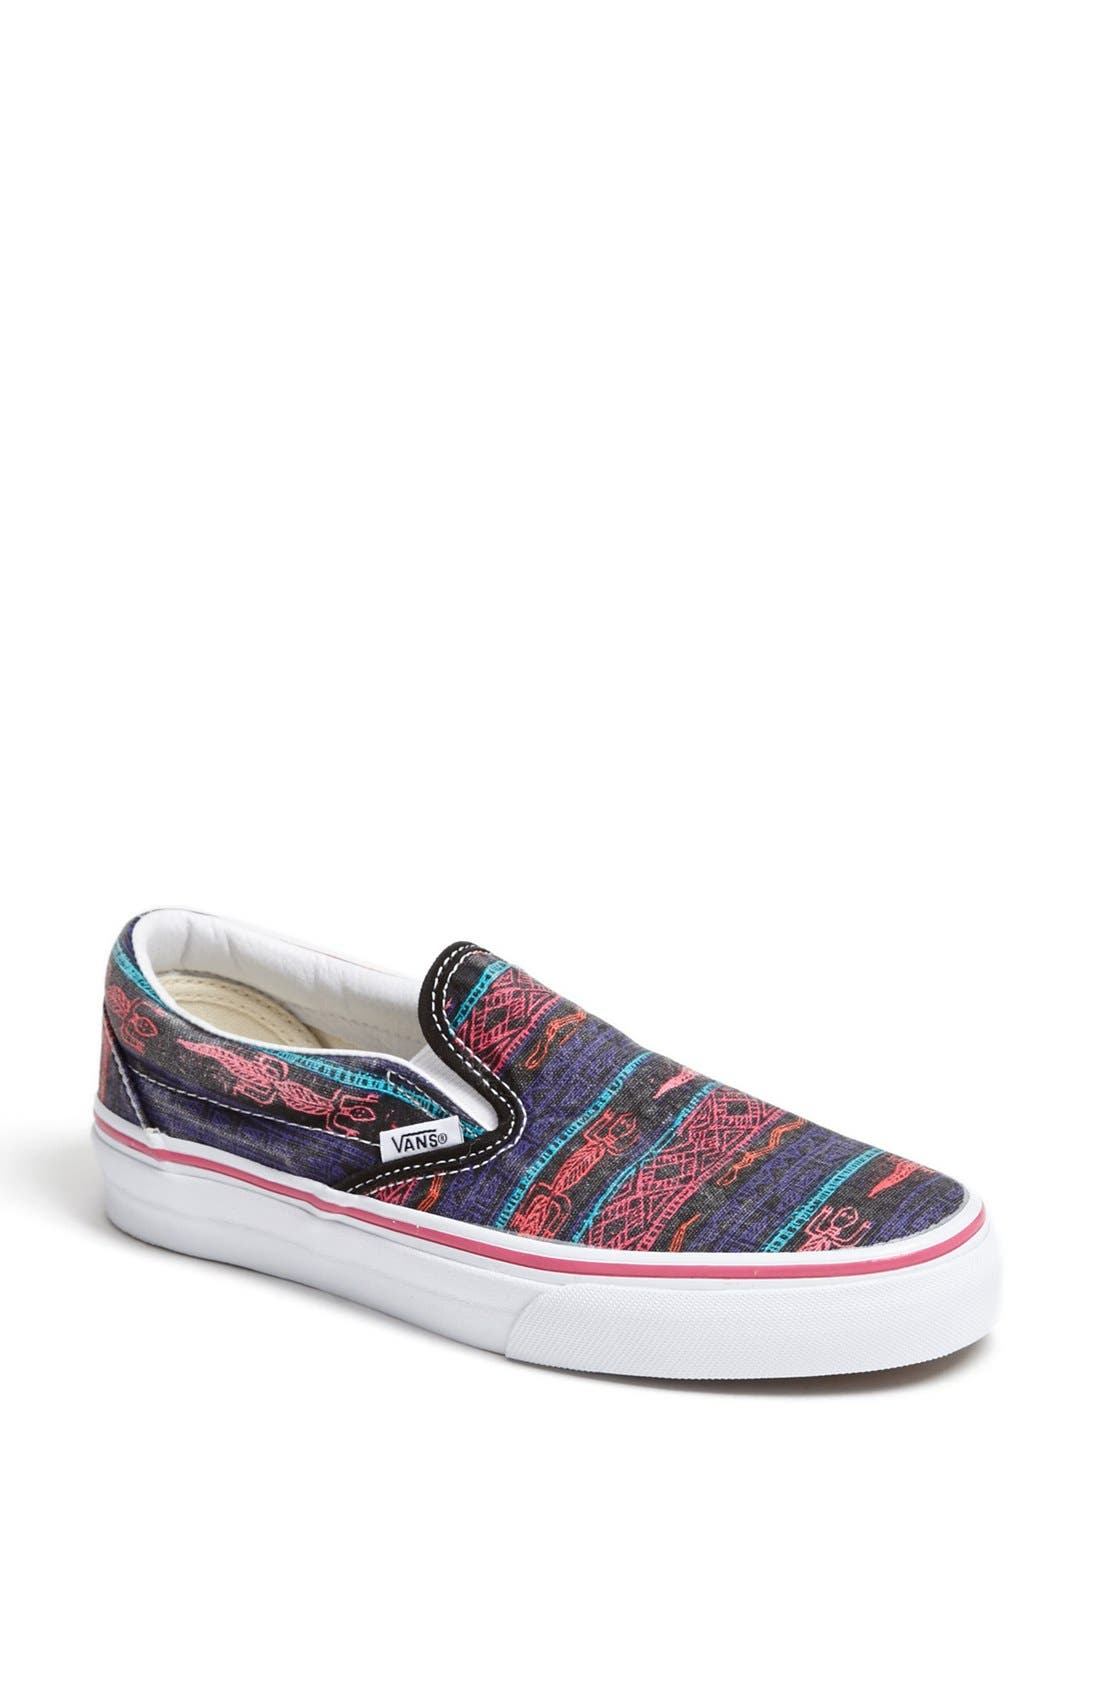 Main Image - Vans 'Van Doren' Slip-On Sneaker (Women)